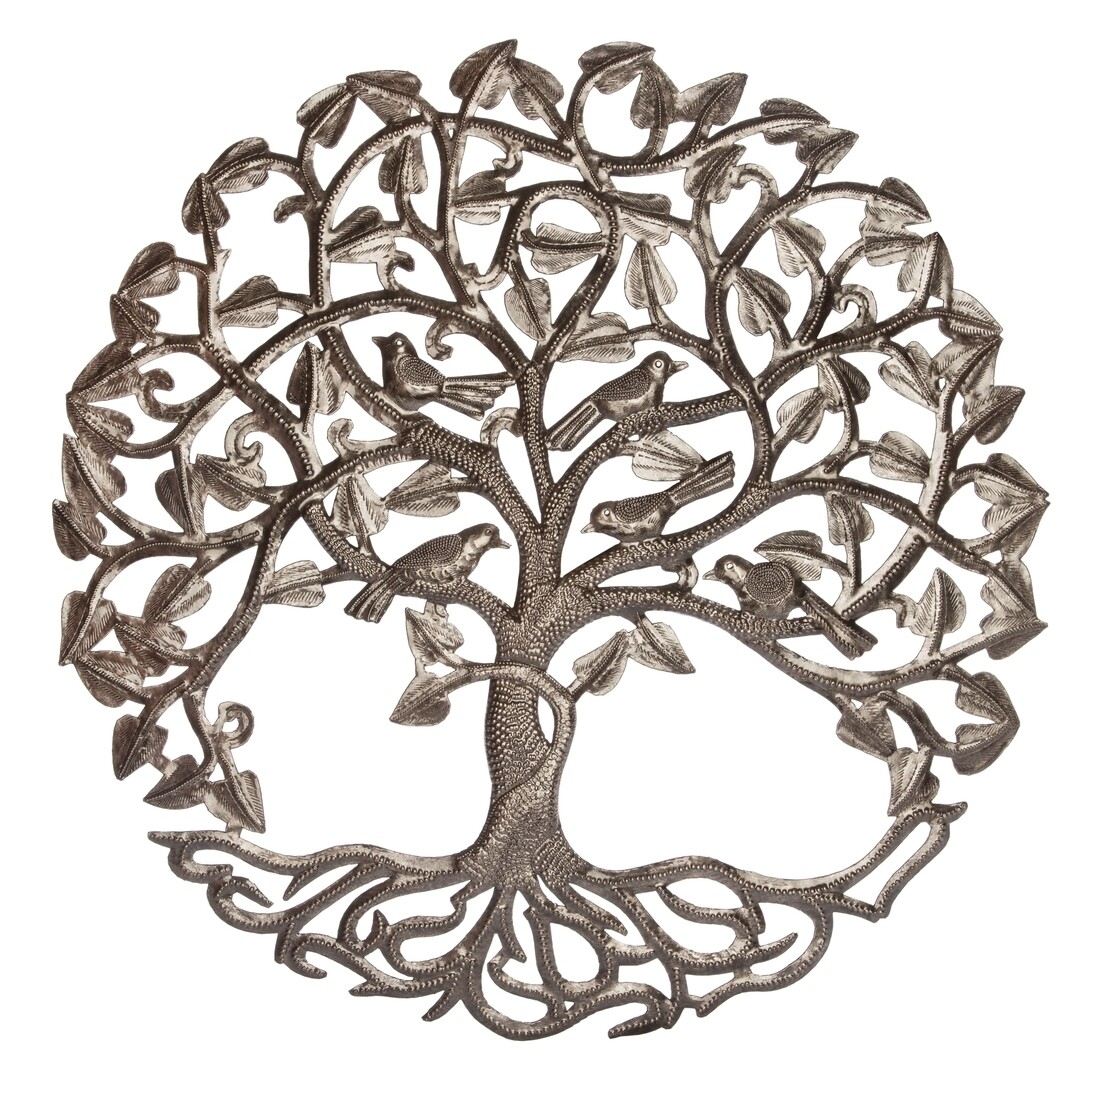 600-RND313 Perpetual Tree of Life - Hand forged in Haiti